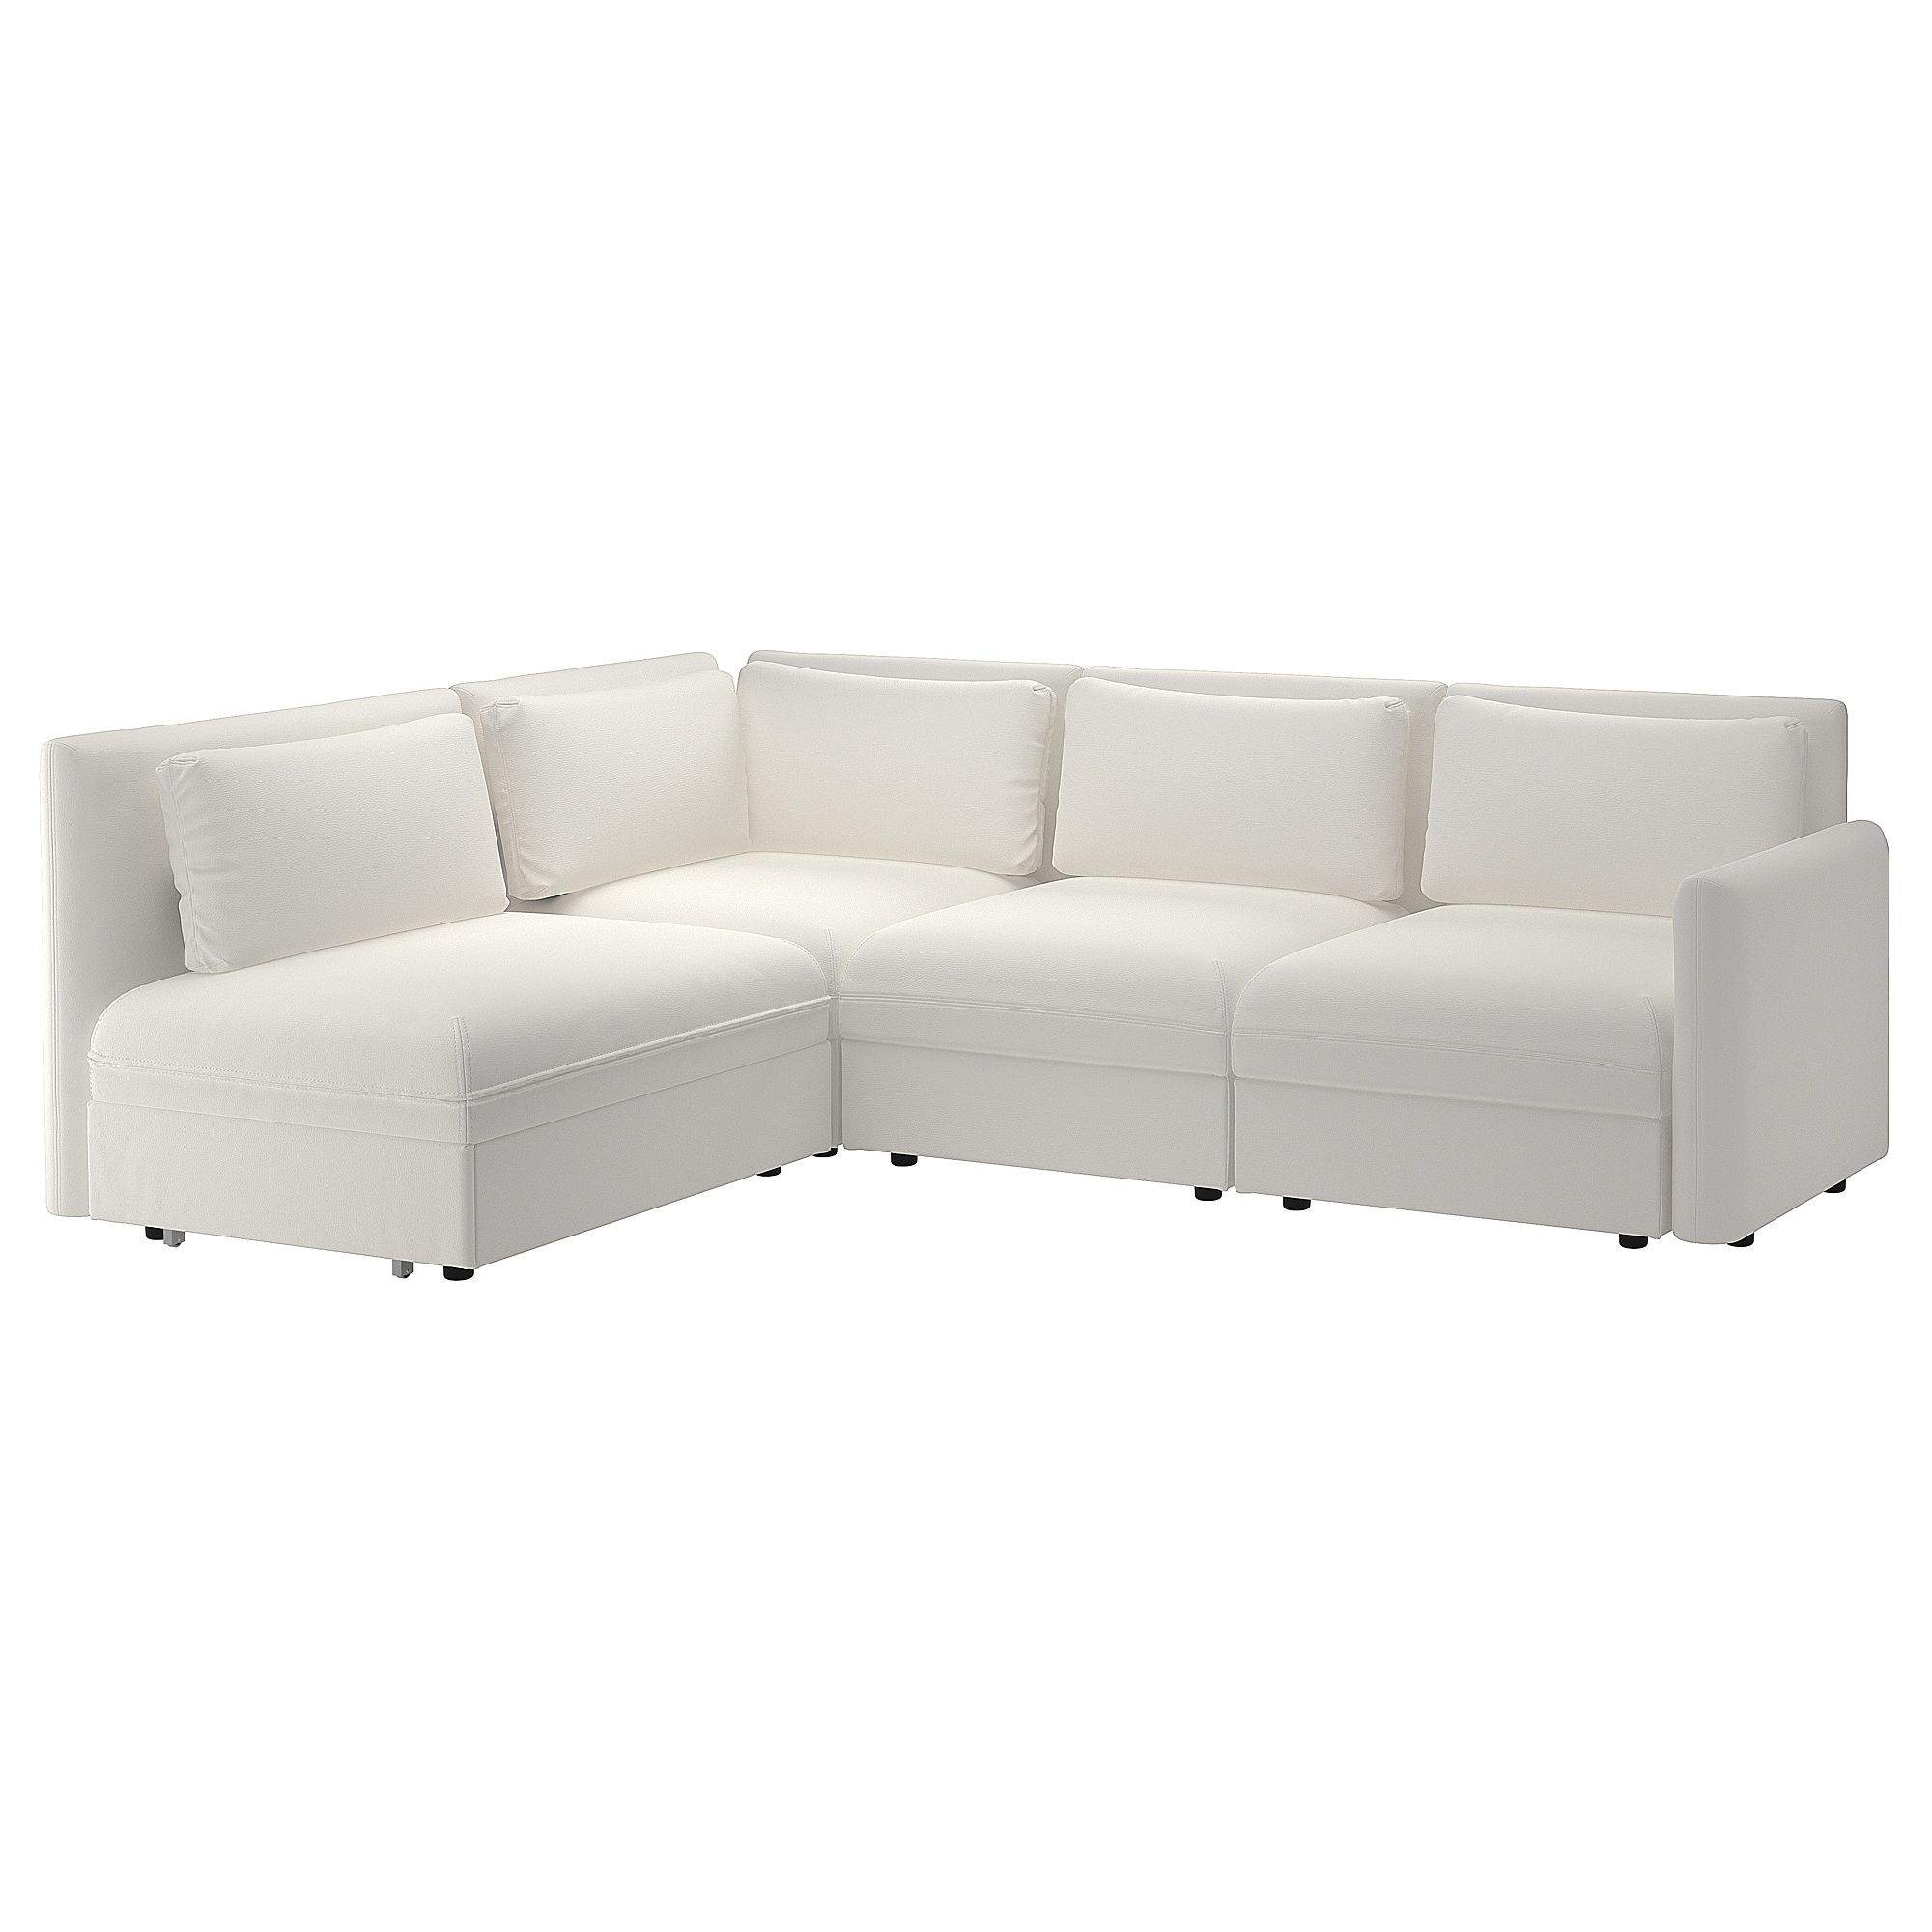 Mod sectional, 3 seat w slpr sect VALLENTUNA and storage, Murum ...